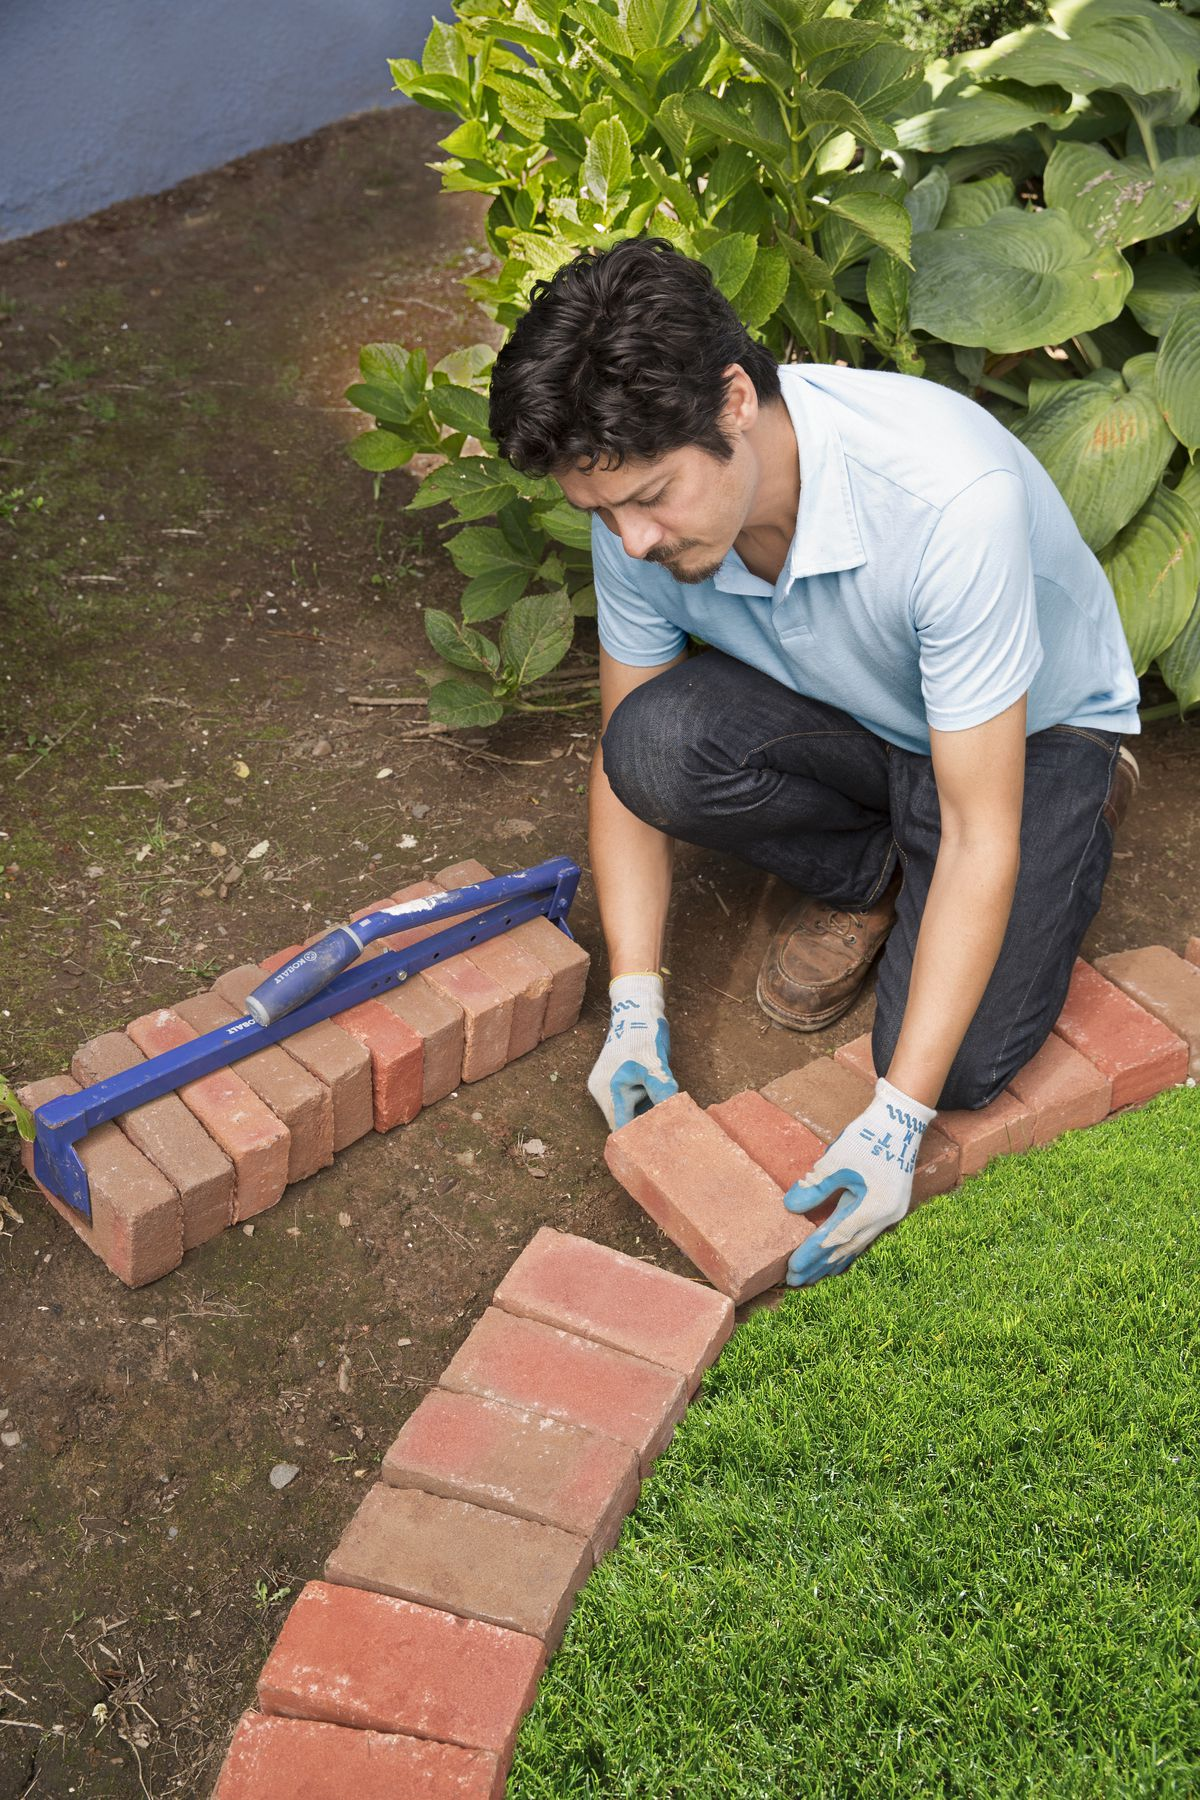 Man Edges Bed With Bricks Against Grass Line